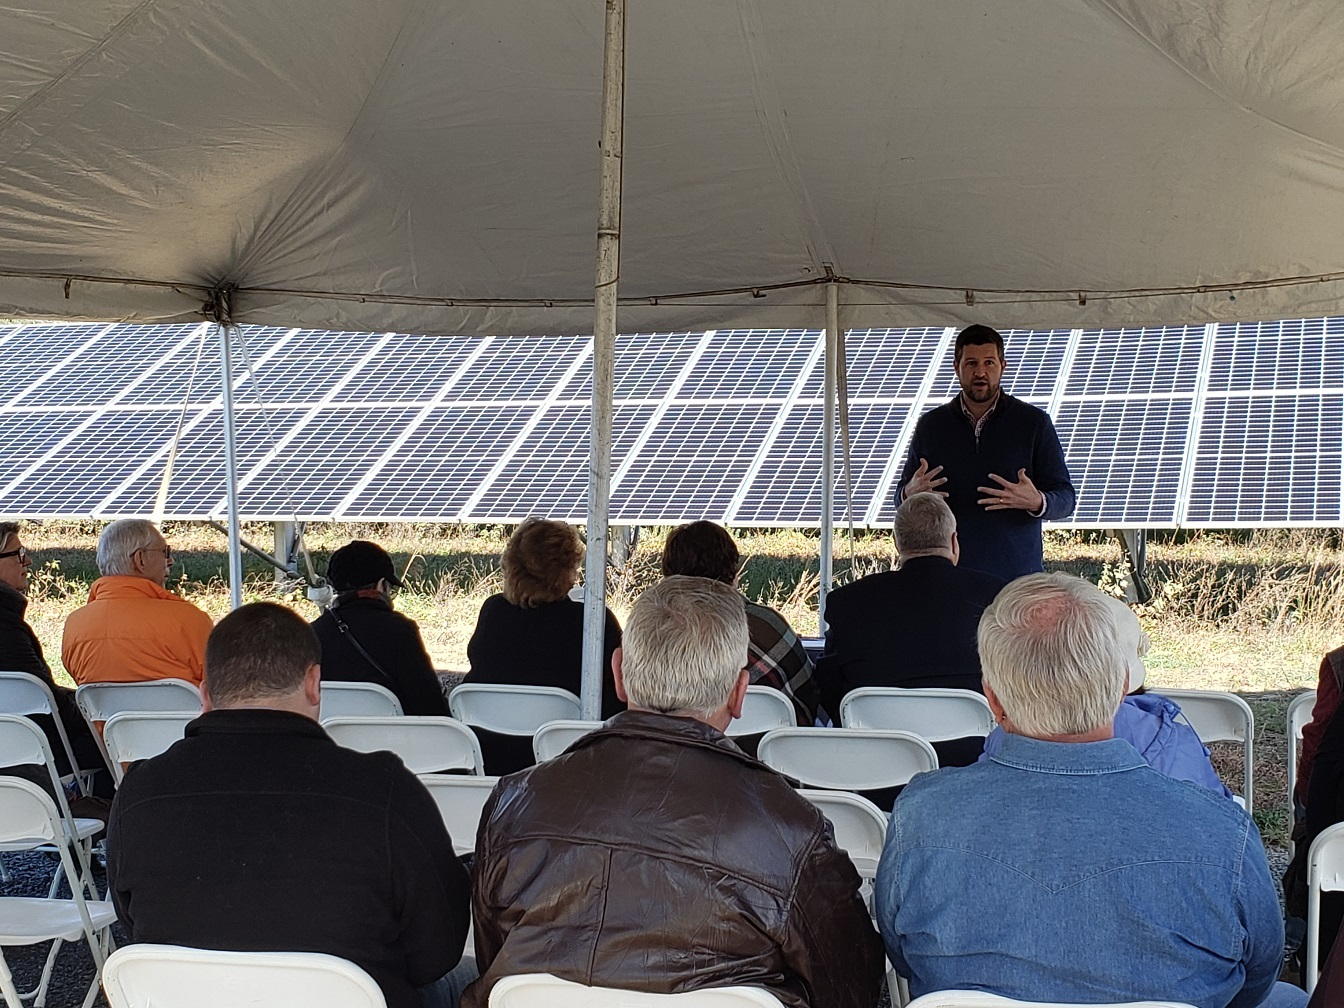 A ribbon cutting ceremony at a previously-finished community solar project by Nexamp in Rochester, NY. Image: Nexamp.